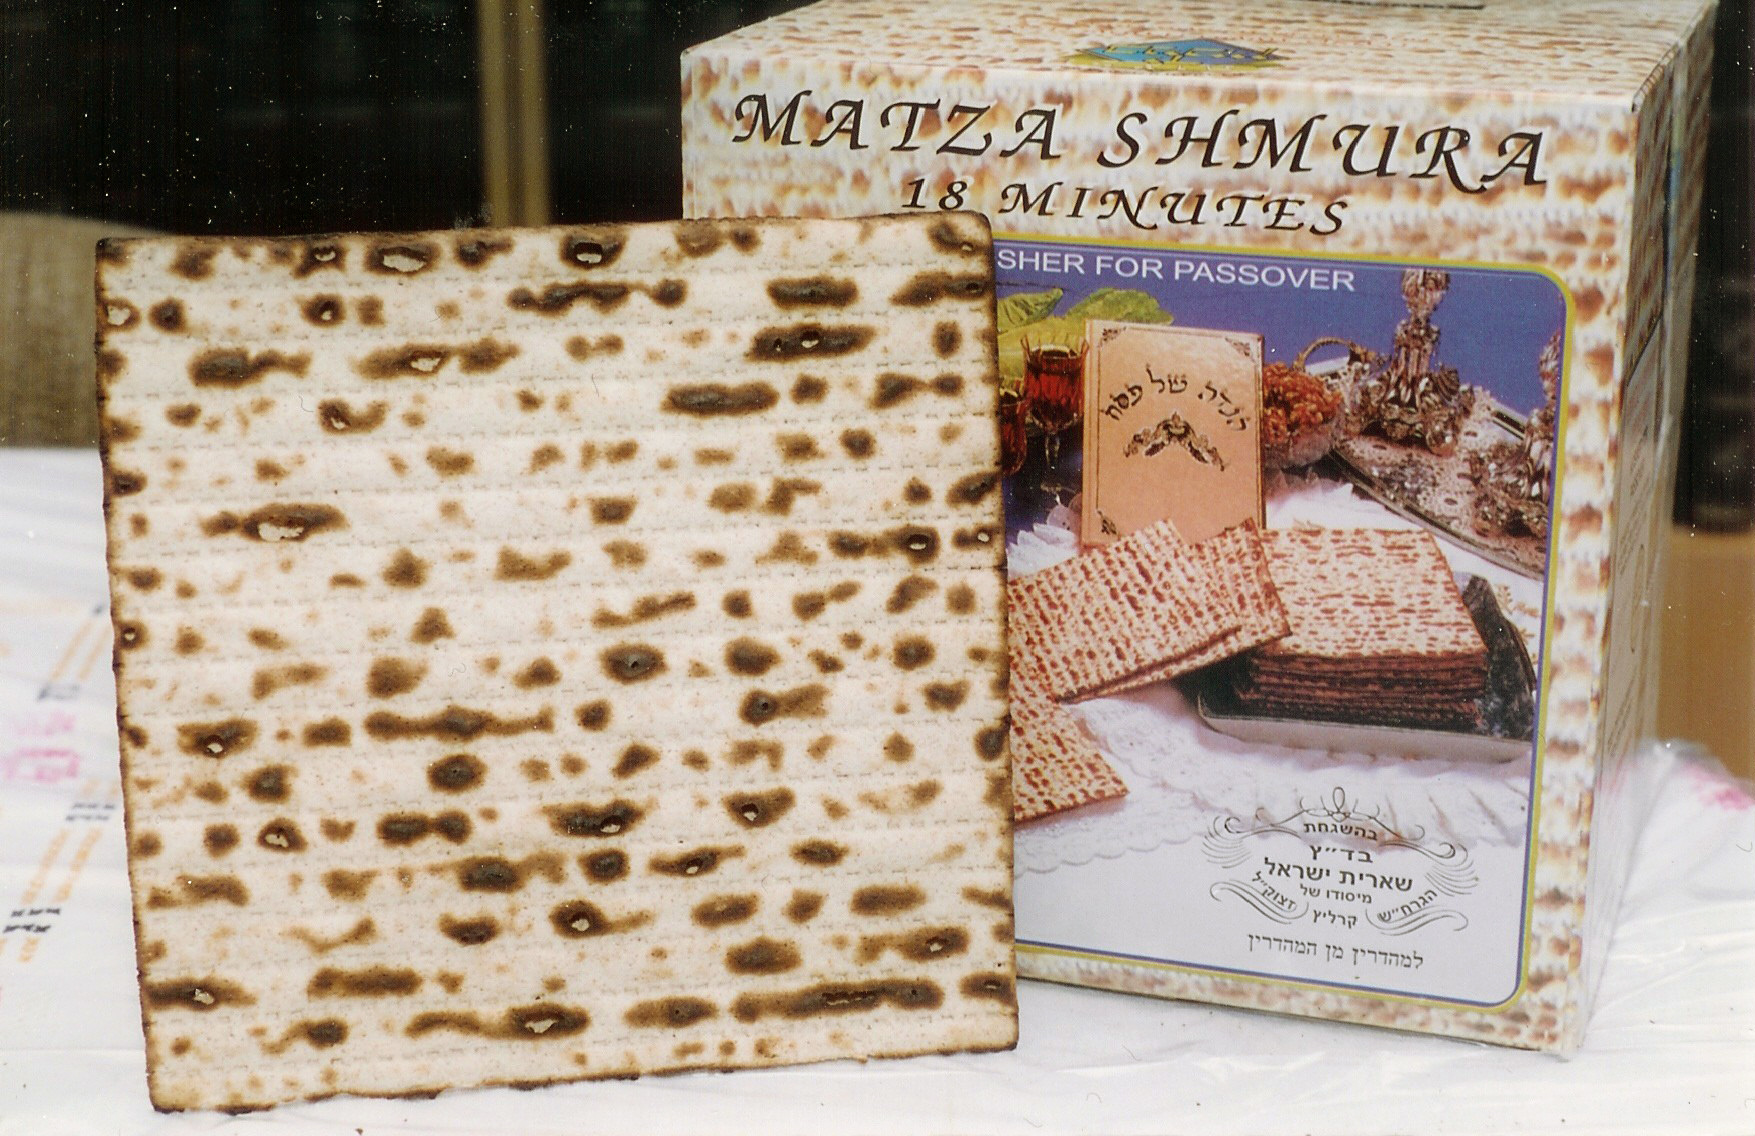 https://i1.wp.com/upload.wikimedia.org/wikipedia/commons/9/9a/Machine-made_Shmura_Matzo.jpg